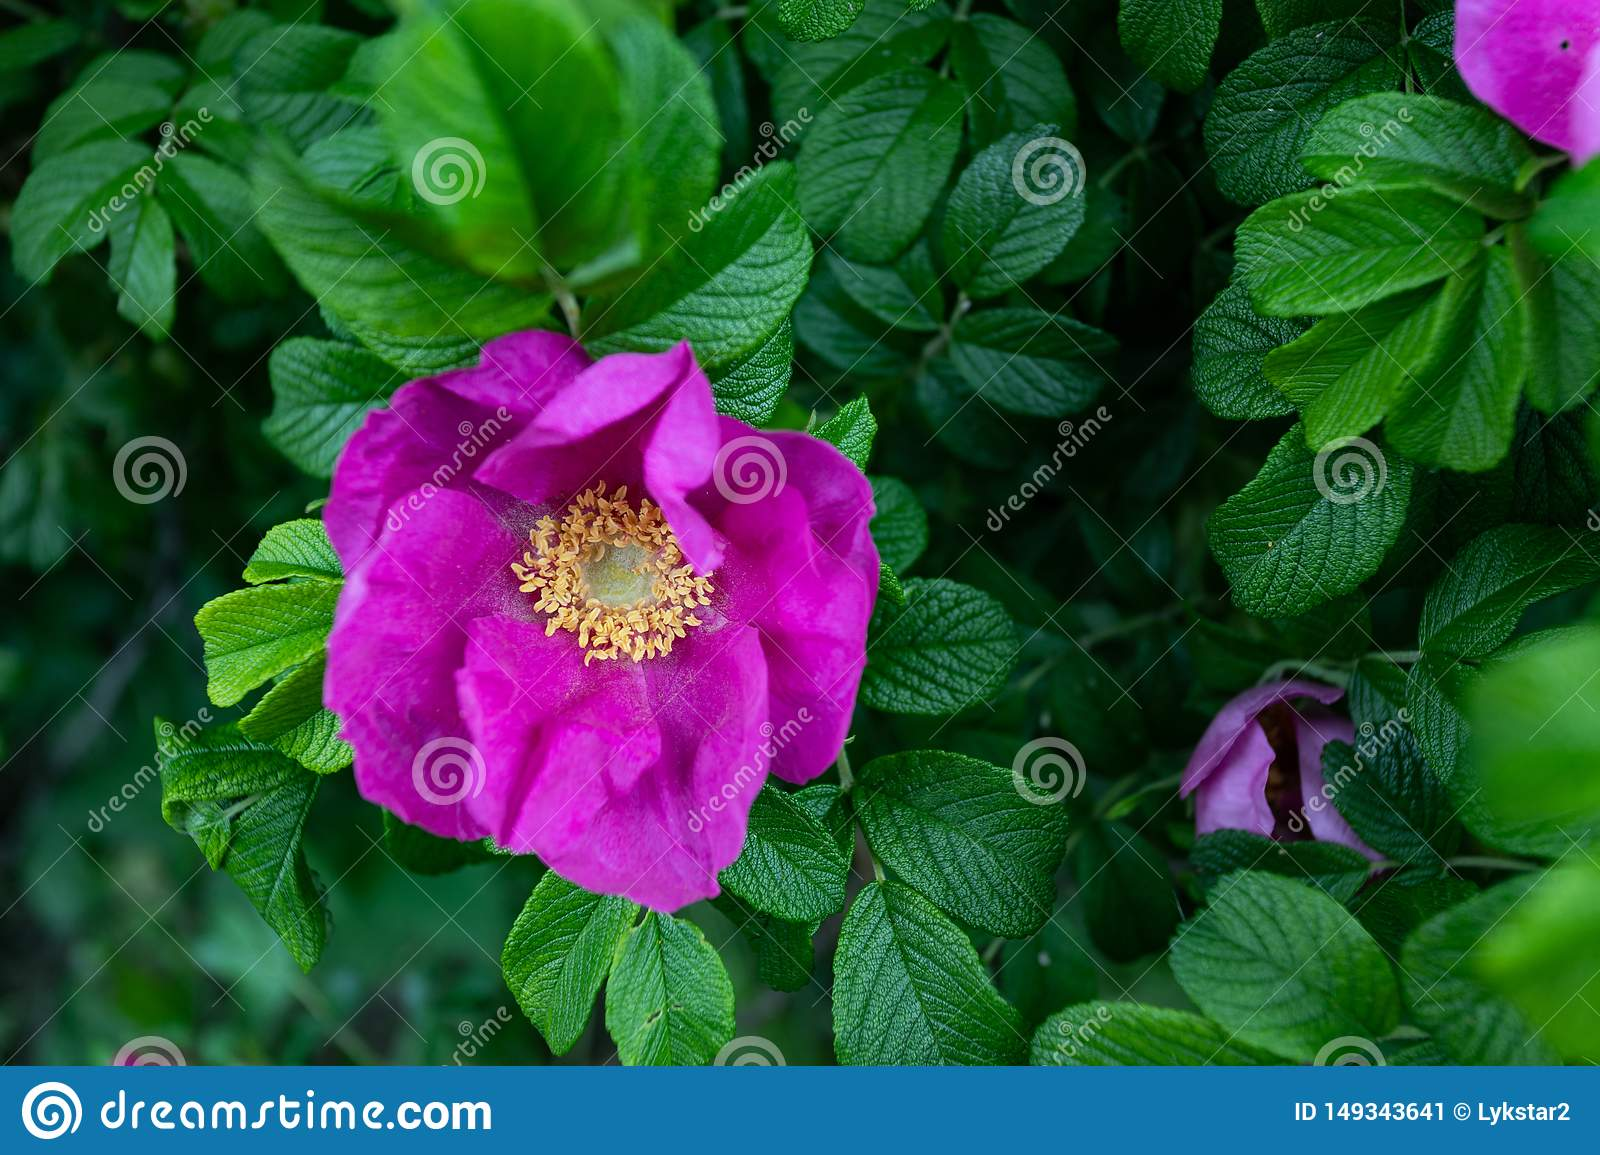 Macro photo nature blooming dogrose. Background texture of pink rosehip buds flowers. An image of a flowering shrub plant dog rose